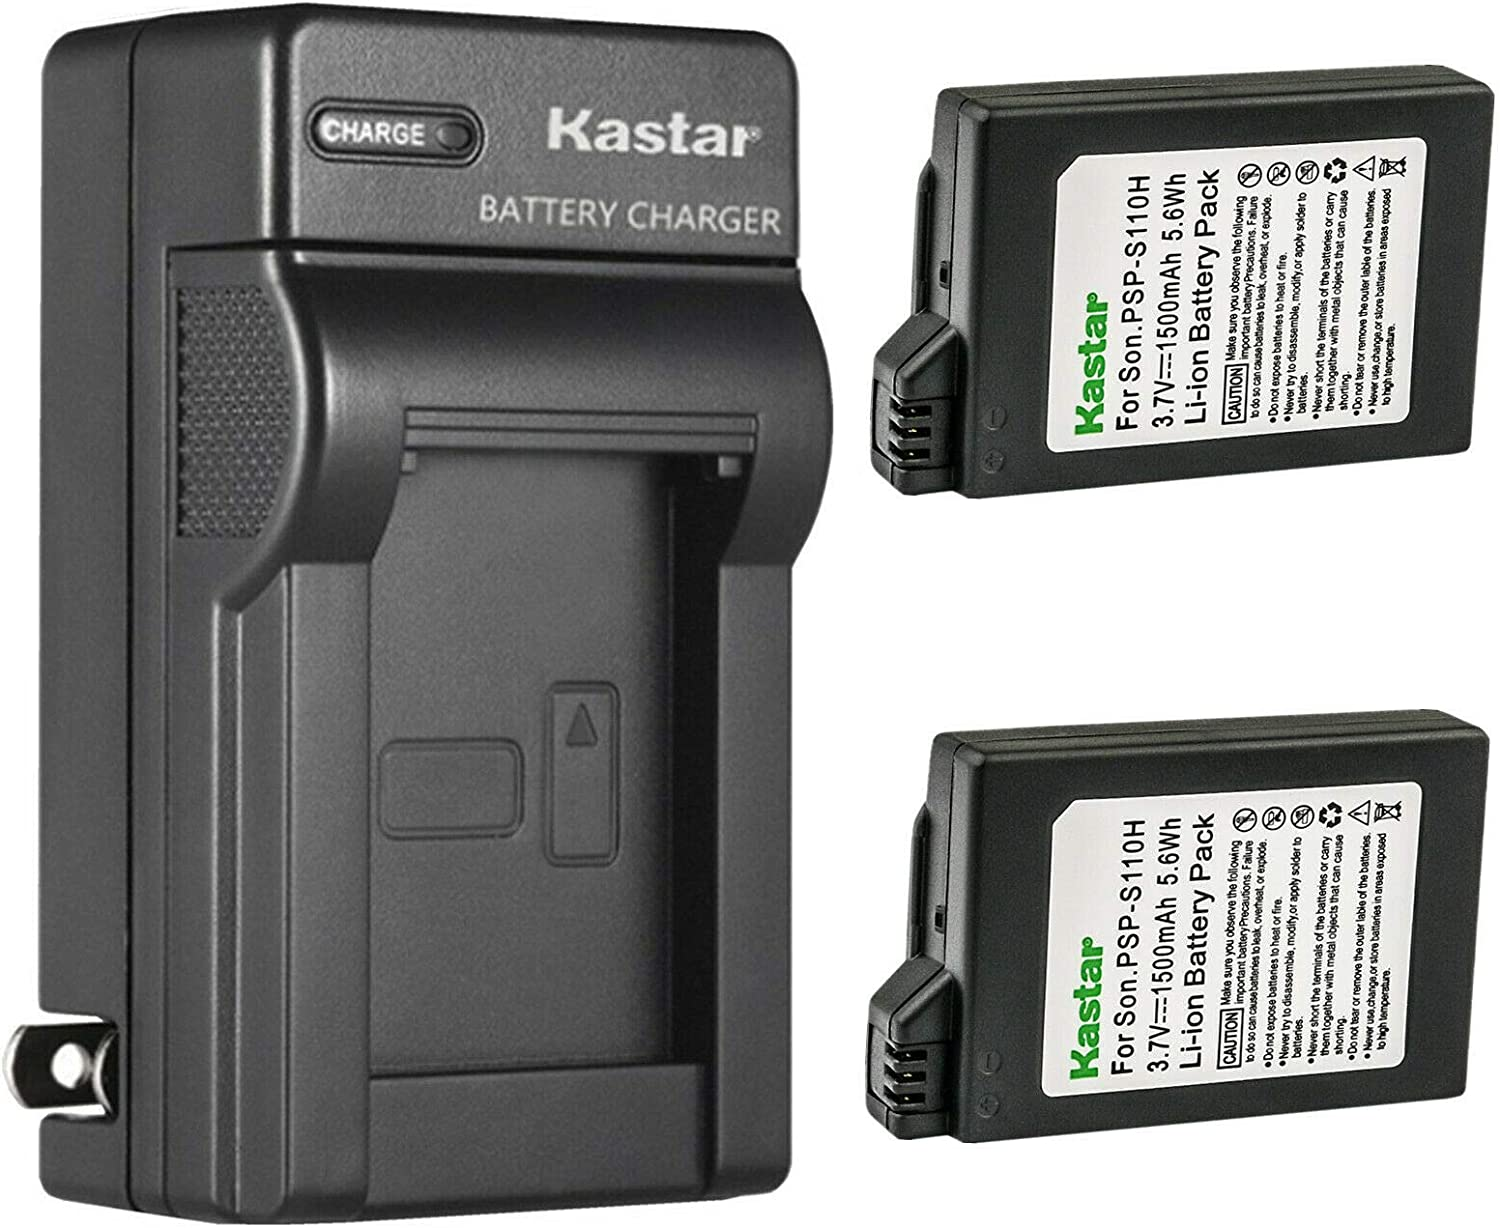 Kastar 2-Pack PSP110 Battery and AC Wall Charger Replacement for Sony PSP-110 Battery, Sony Video Game PSP Playstation PSP-1003, PSP-1004, PSP-1005, PSP-1006, PSP-1007, PSP-1008, PSP-1001, PSP-1002